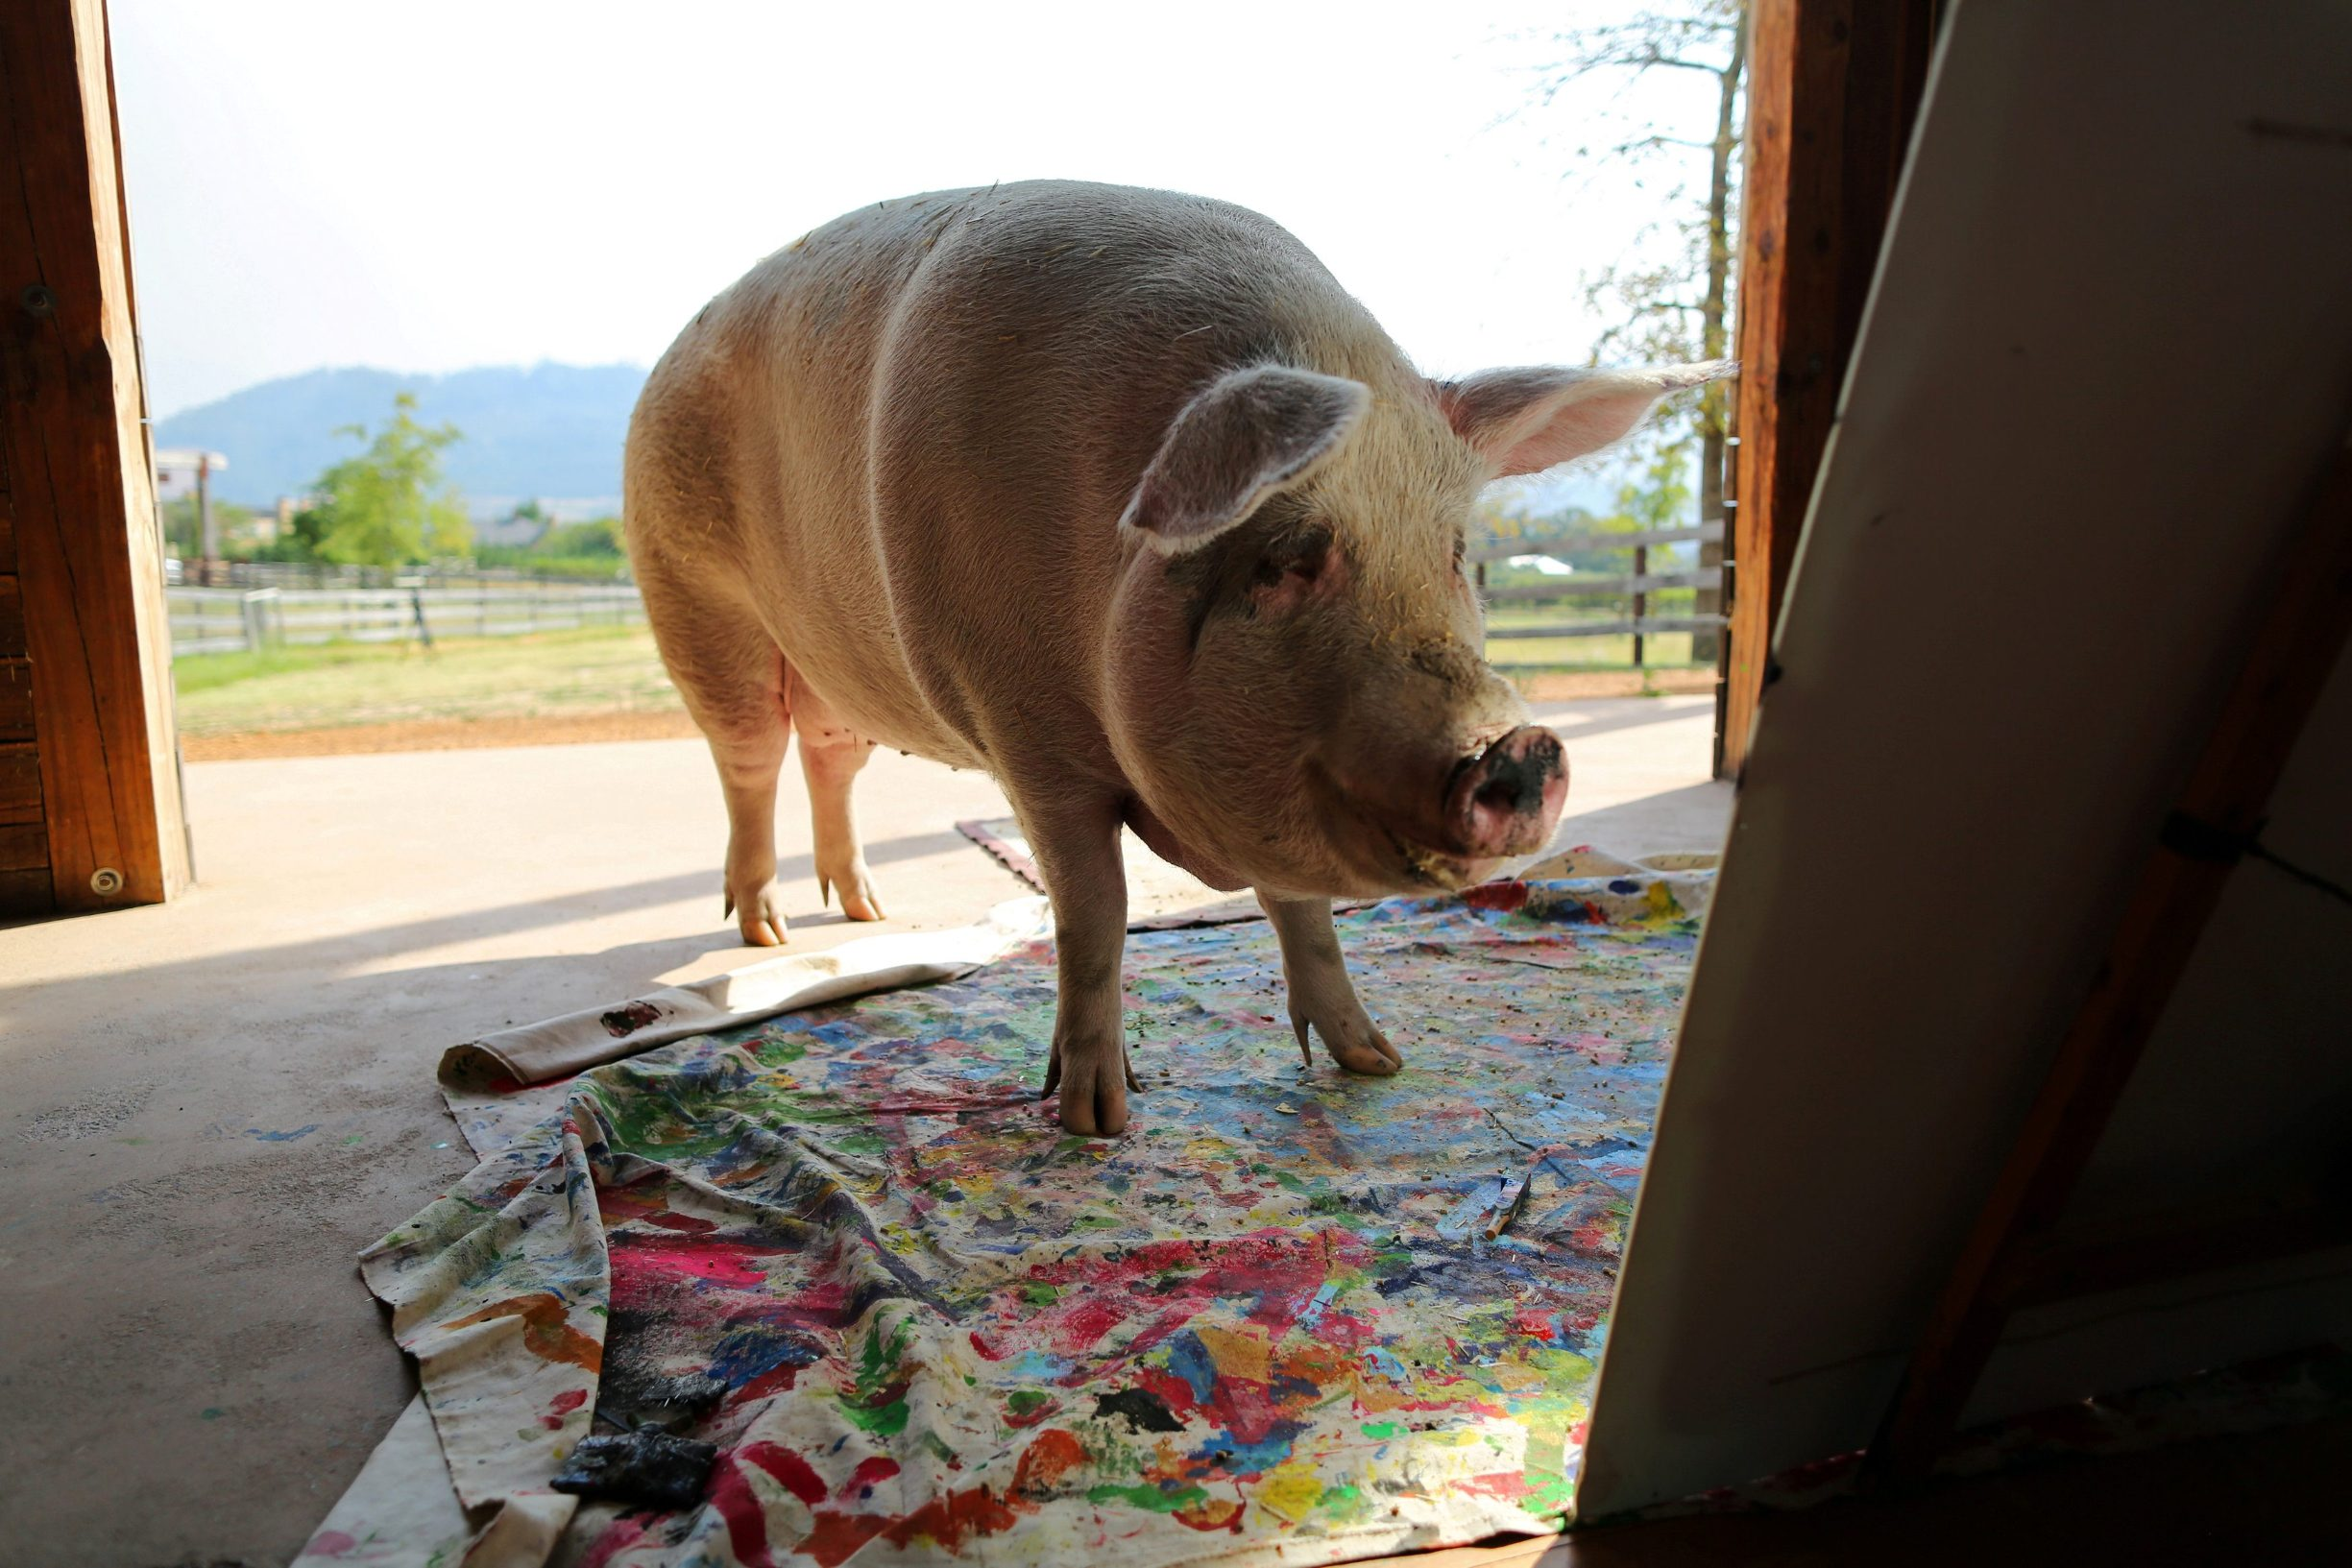 FILE PHOTO: Pigcasso, a rescued pig, looks at a canvas after painting at the Farm Sanctuary in Franschhoek, outside Cape Town, South Africa February 21, 2019. 2019. REUTERS/Sumaya Hisham/File Photo